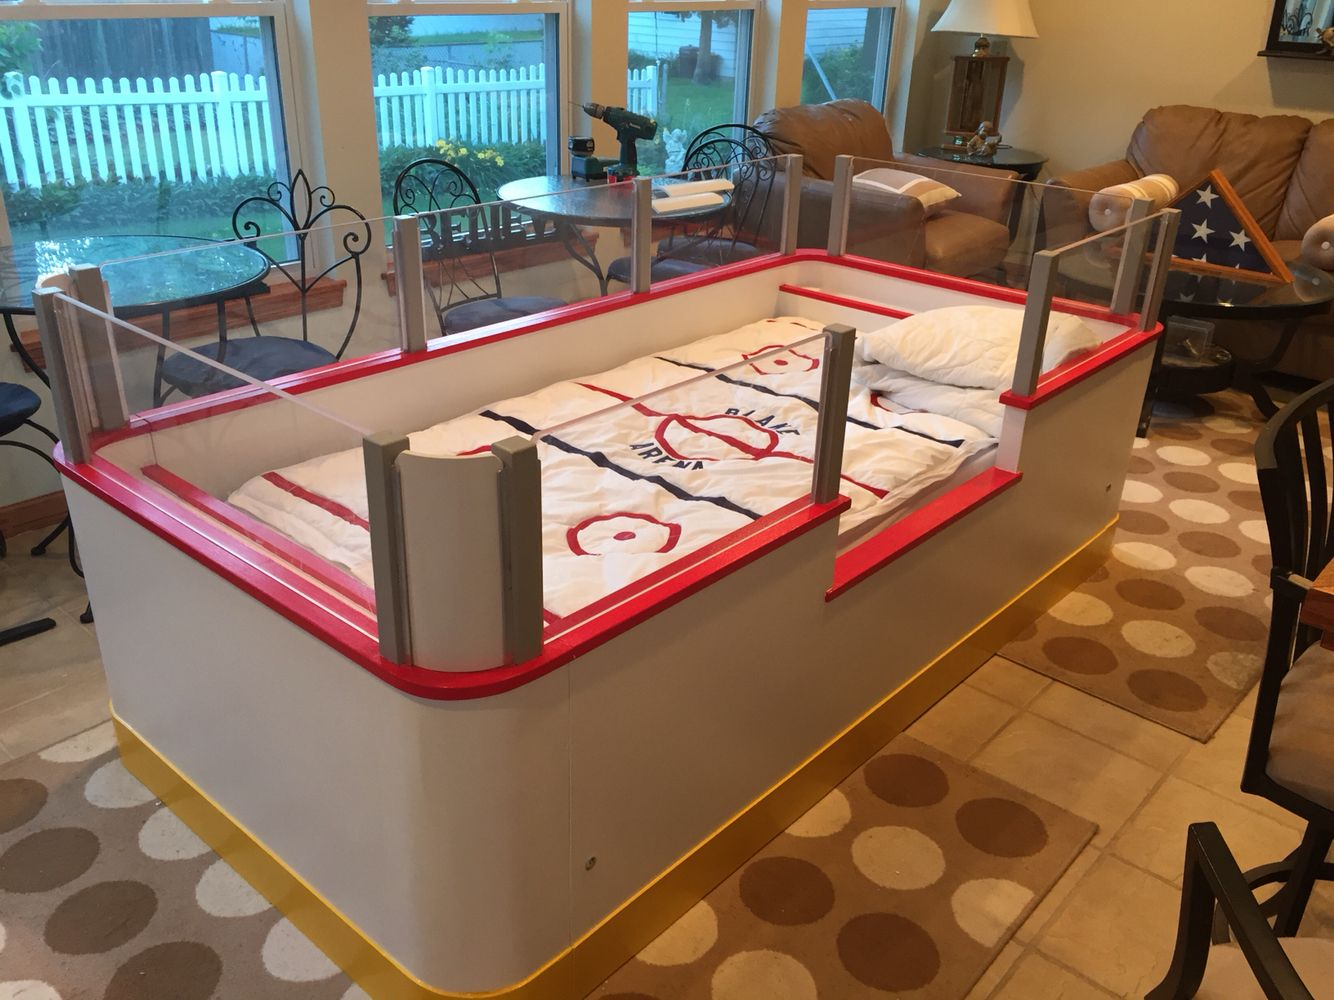 Boys hockey bedroom ideas - How Much Would You Pay For This Child S Hockey Rink Bed